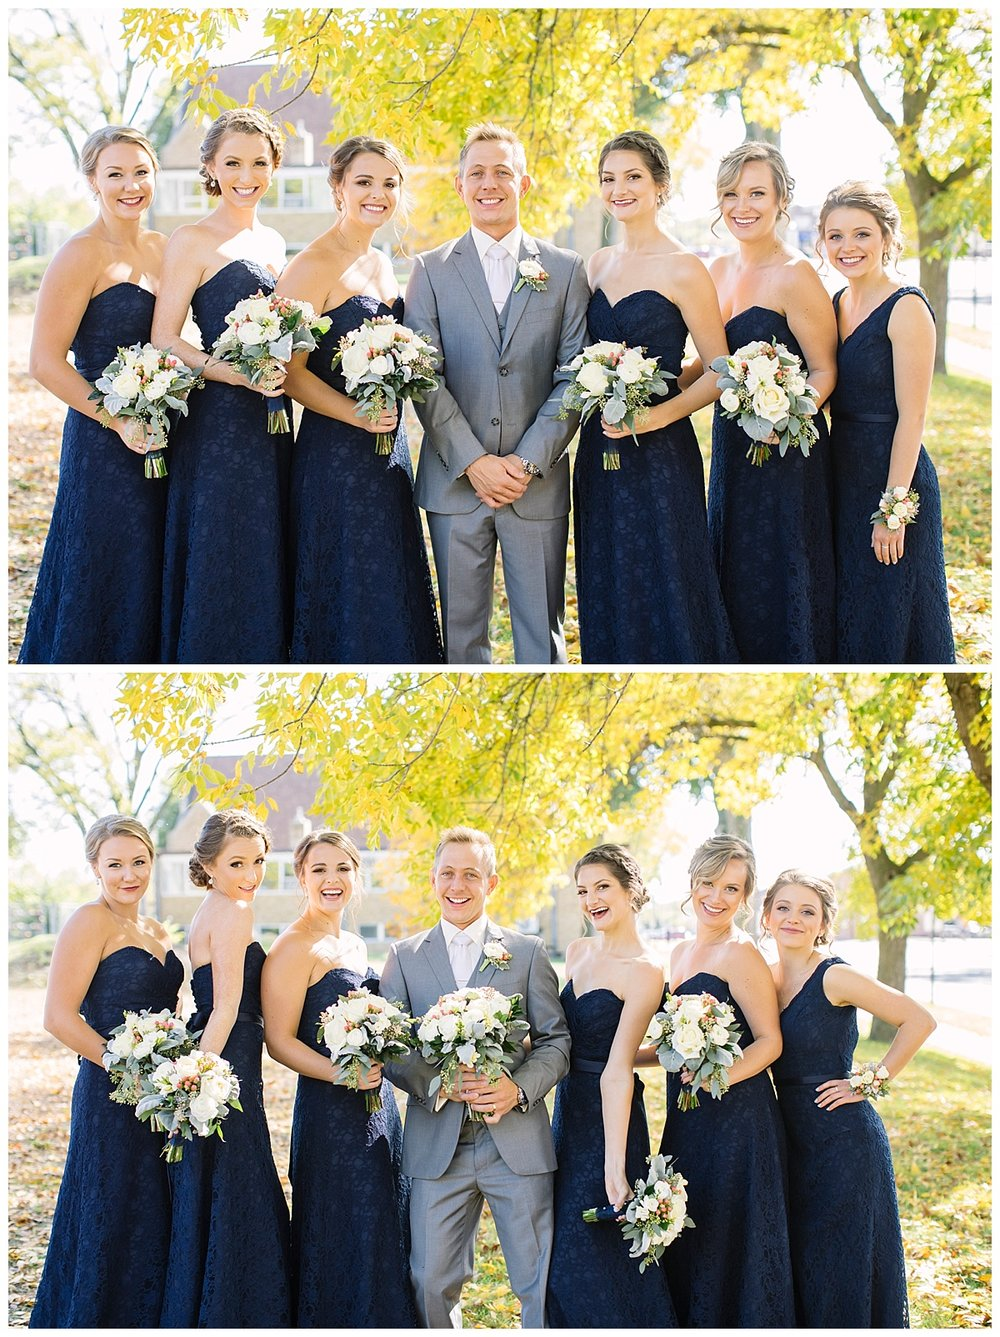 Fall Minnesota Wedding Photographer | Bethany Melvin Photography